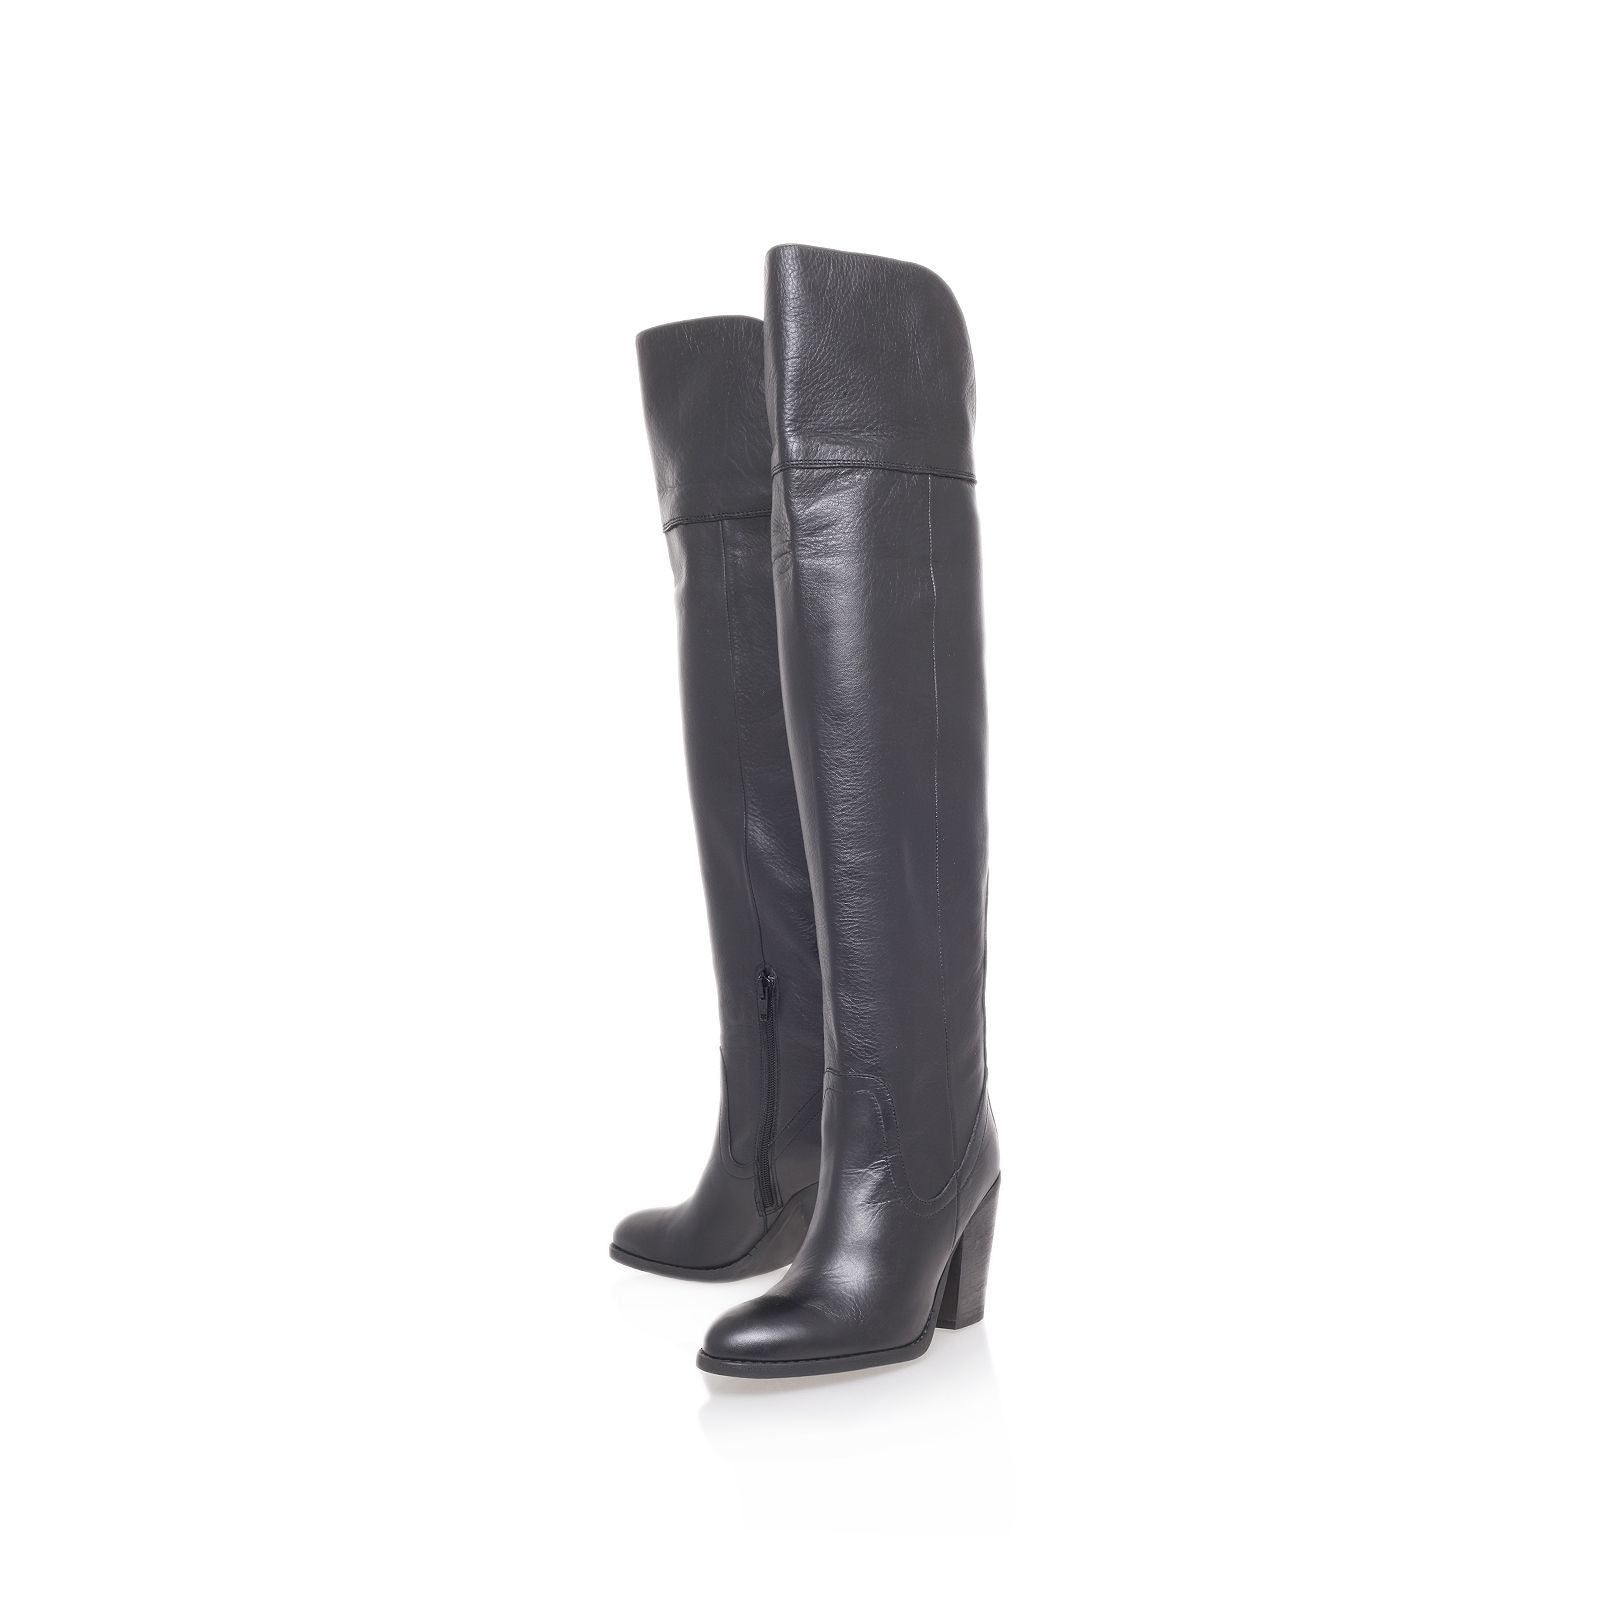 Wink high heel knee boots